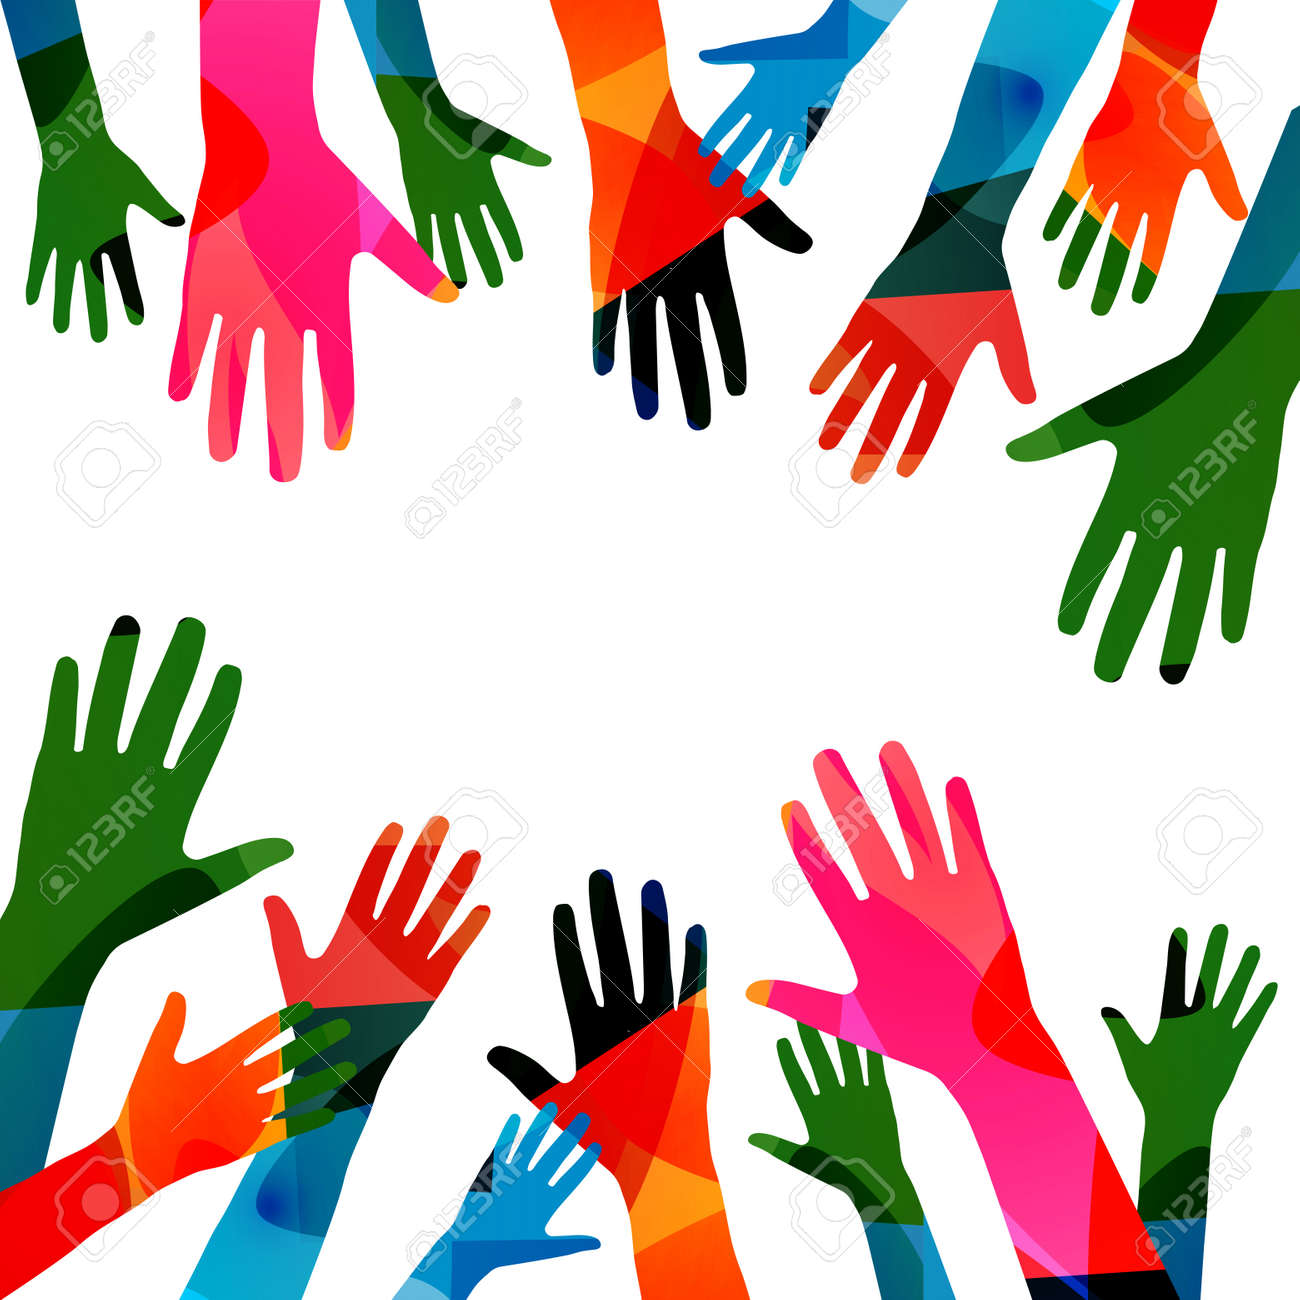 Colorful human hands raised isolated vector illustration. Charity and help, volunteerism, social care and community support concepts - 149793938